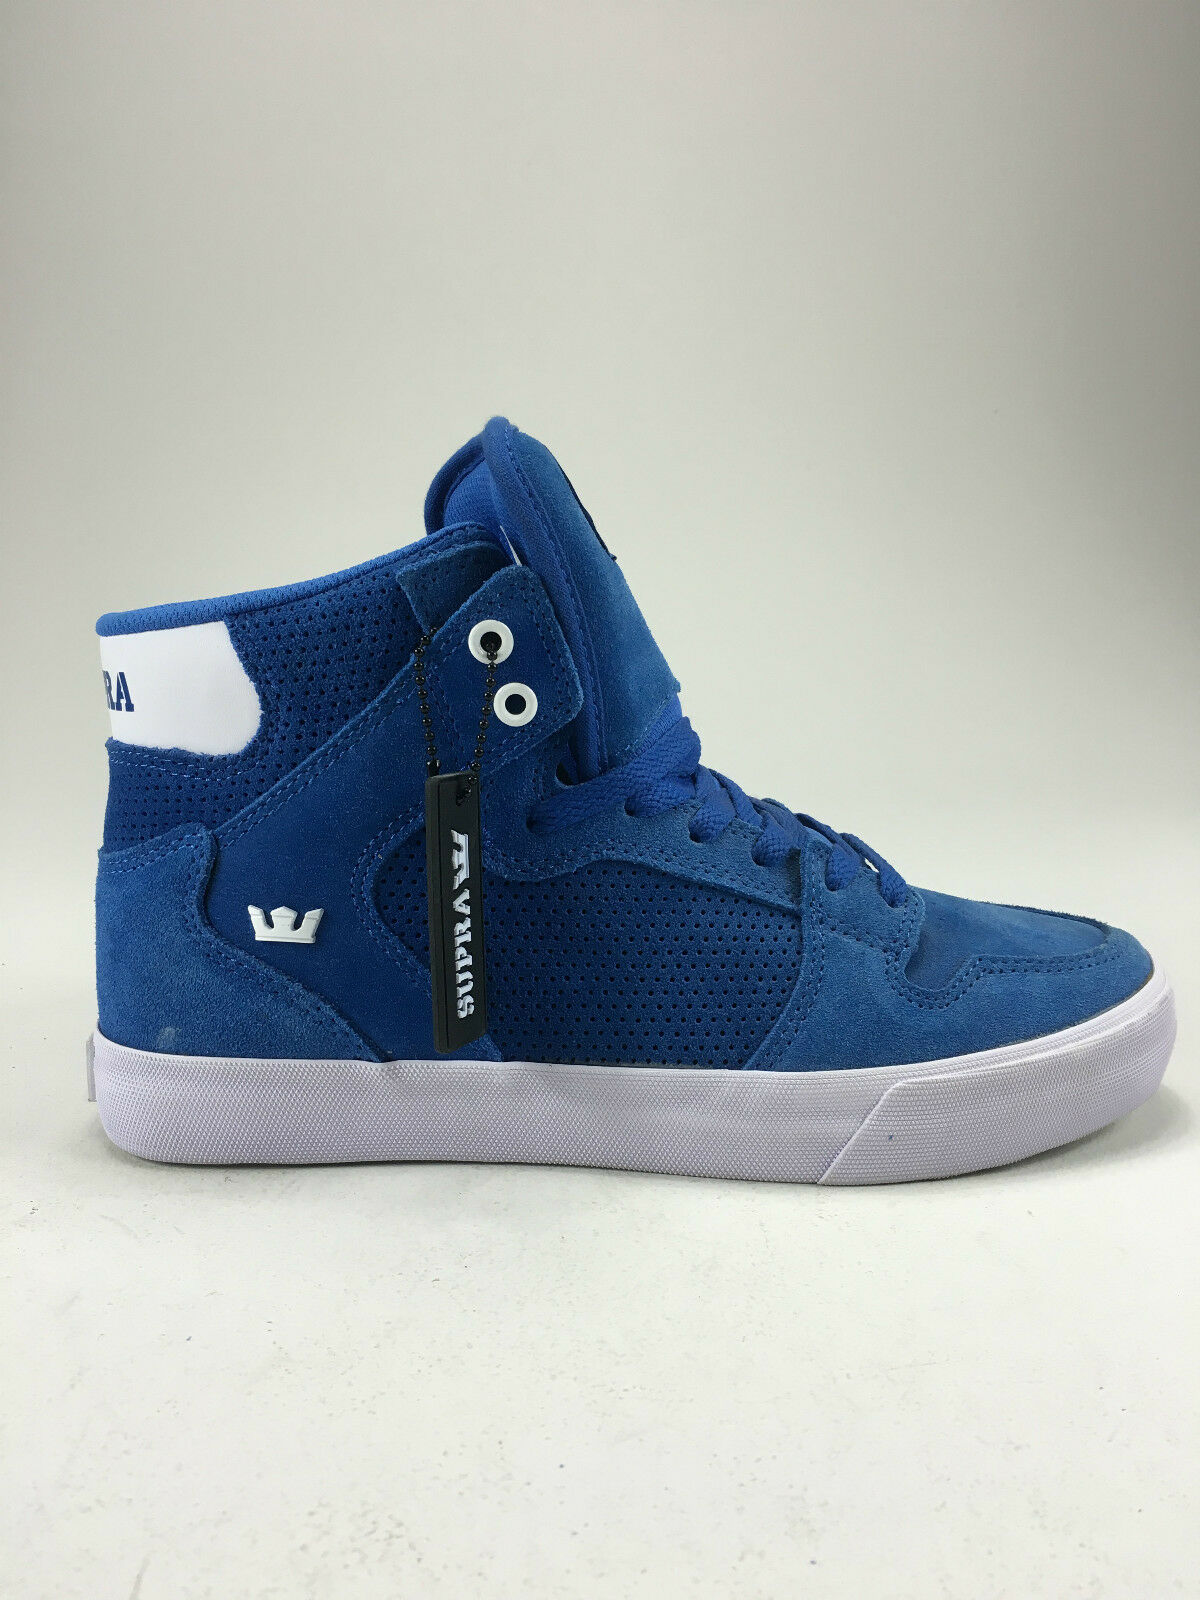 Supra Vaider shoes Trainers Royal White White Brand new in box in Size UK 8